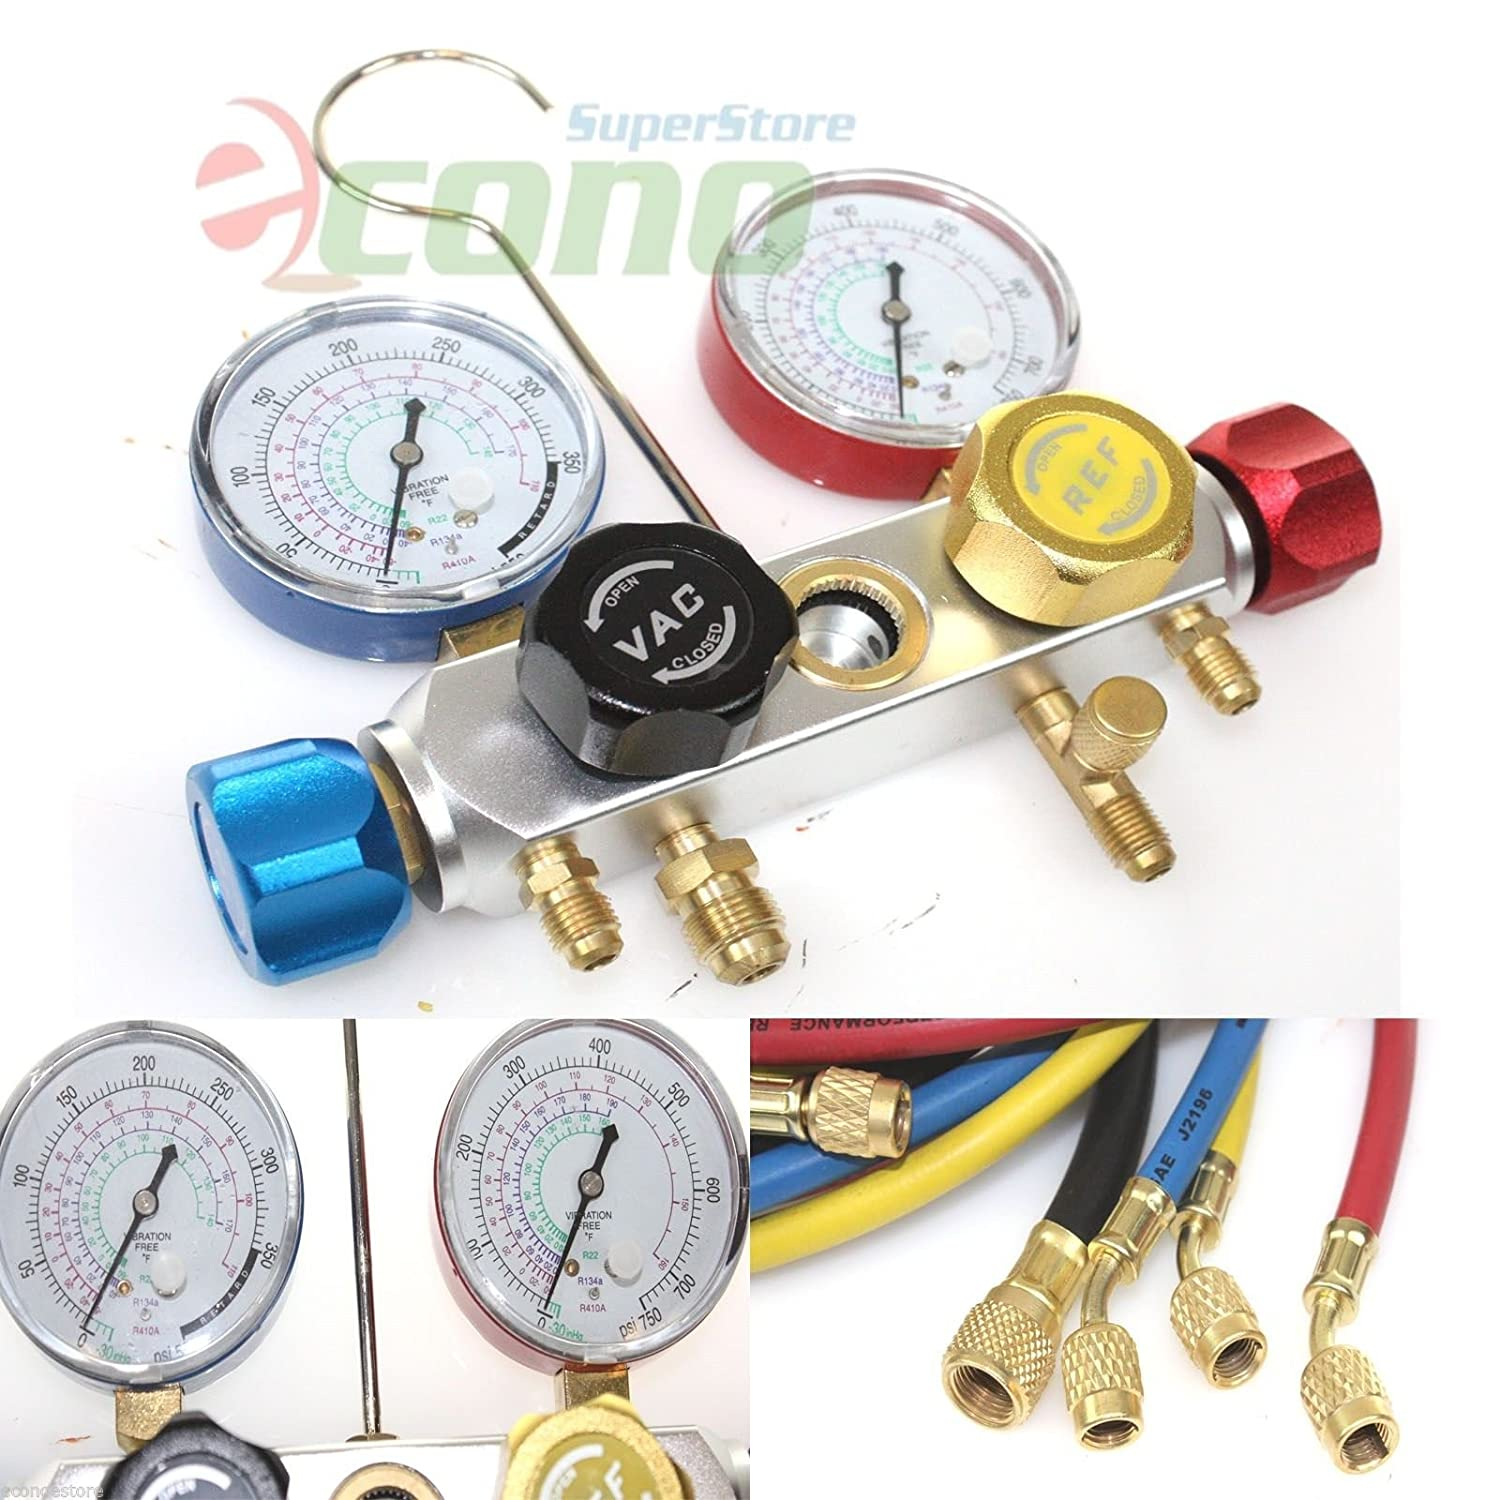 1//2 ACME Adapter Coupler Adapters 4 Way AC Manifold Gauge Set R410a R22 R134a w//Hoses